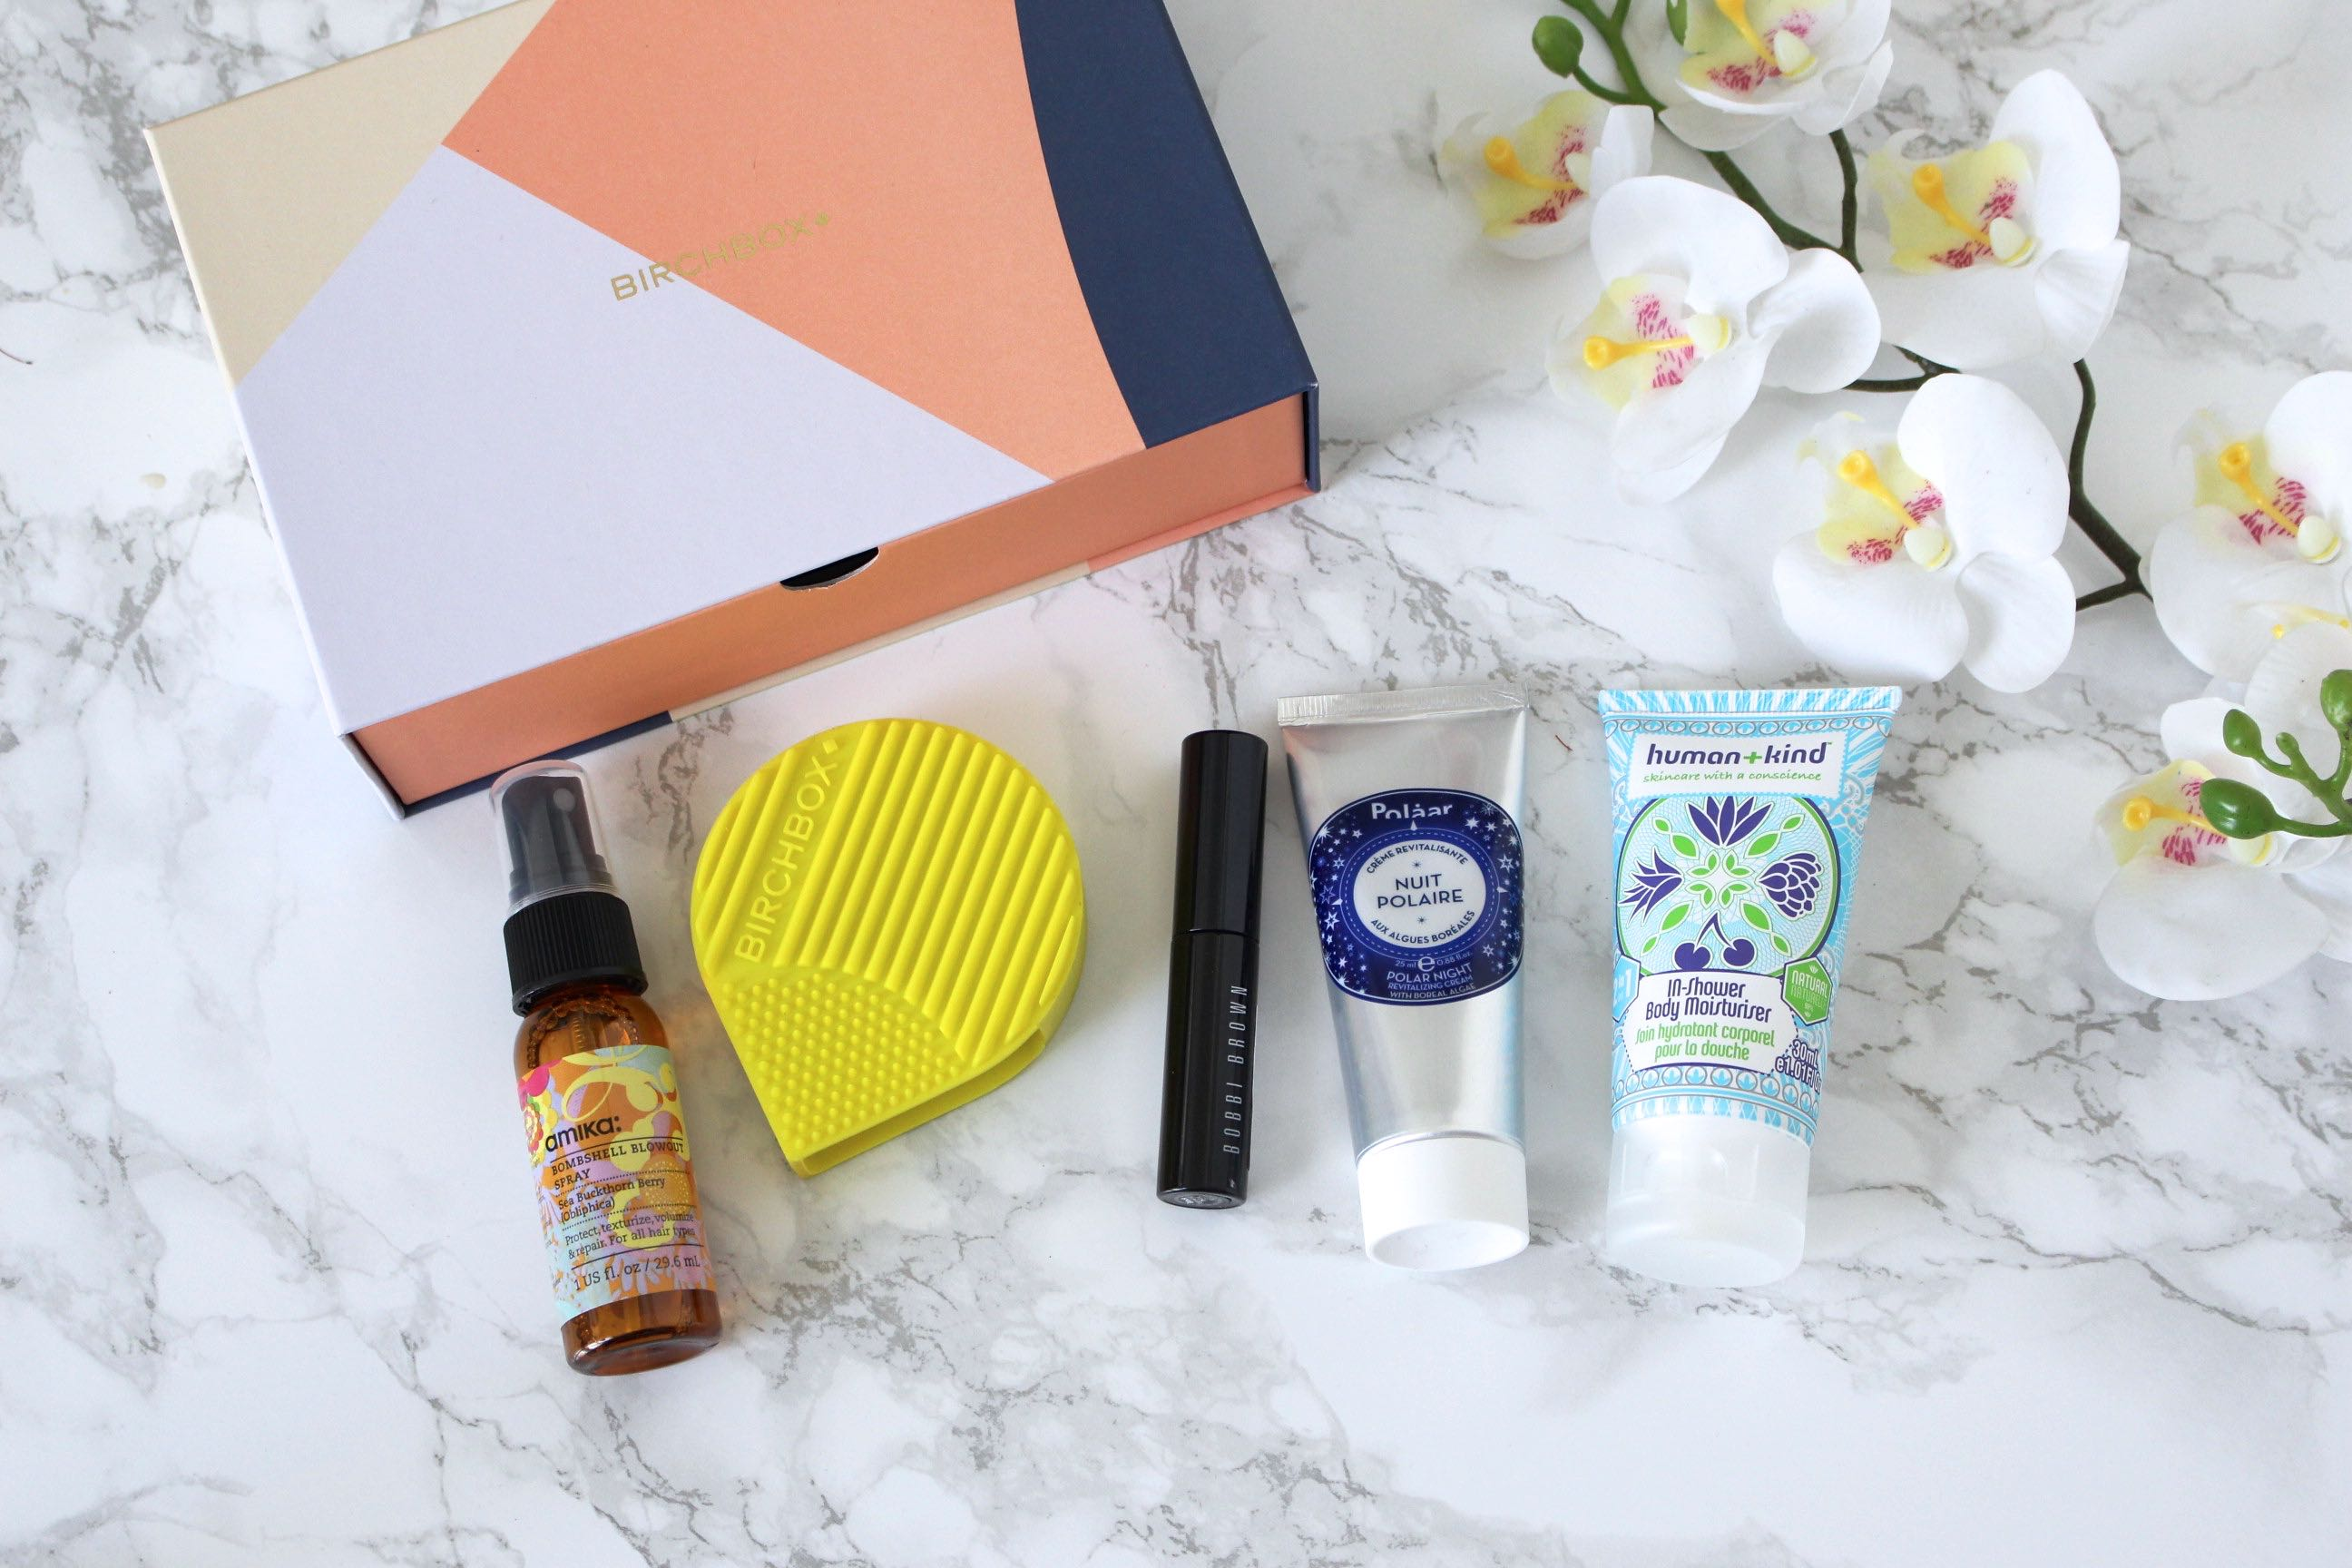 boutique birchbox paris 12 mademoiselle e